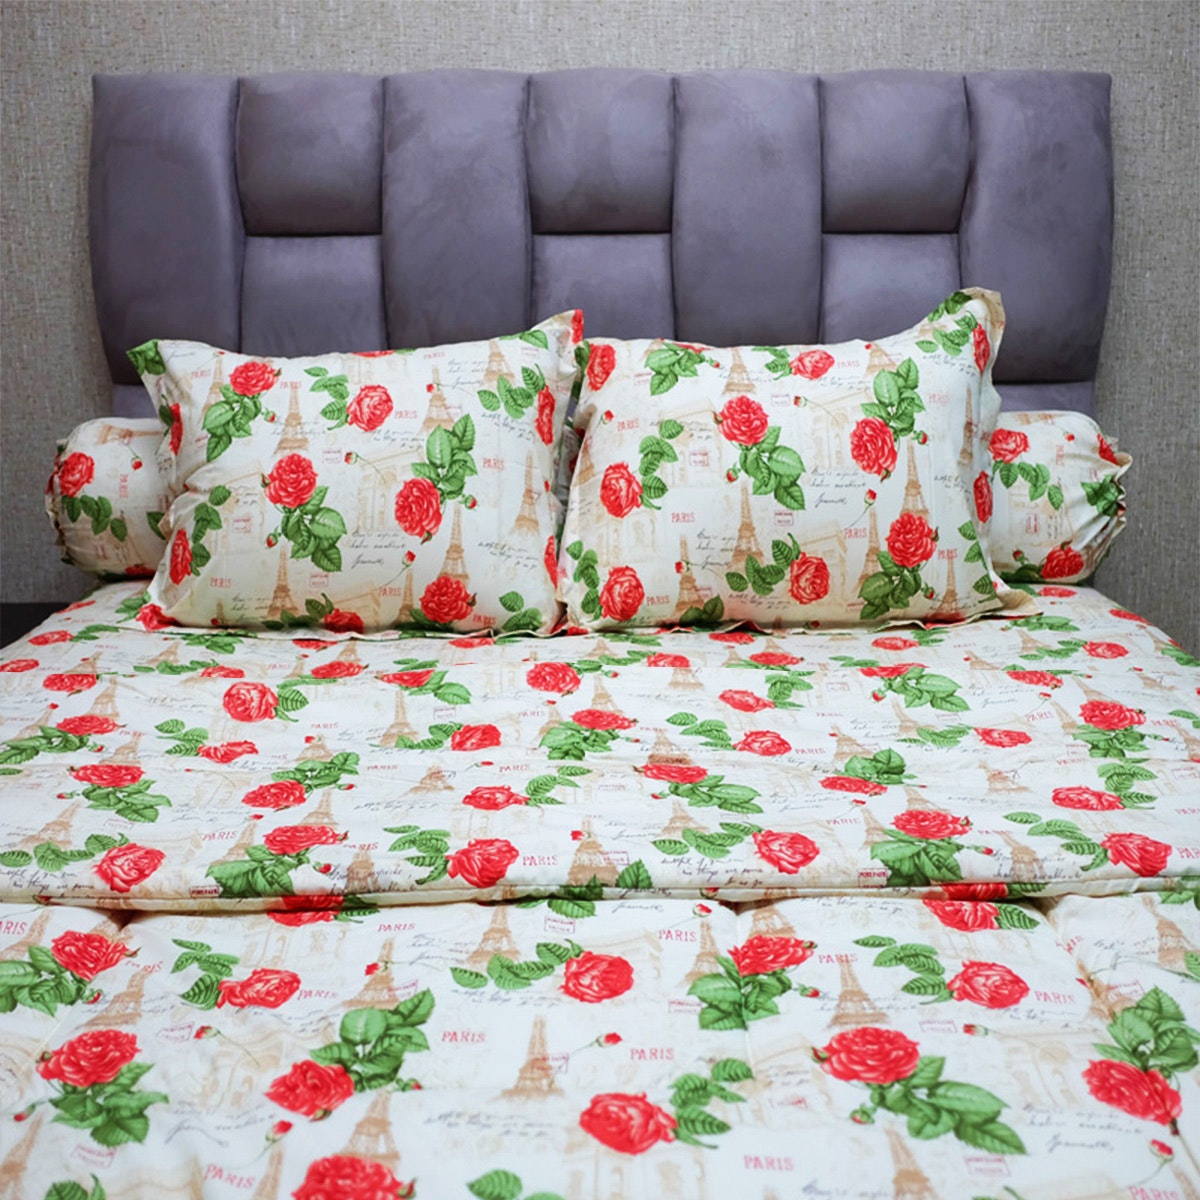 Sleep Buddy Set Sprei dan Bed Cover Amore Rose Red CVC 200x200x30